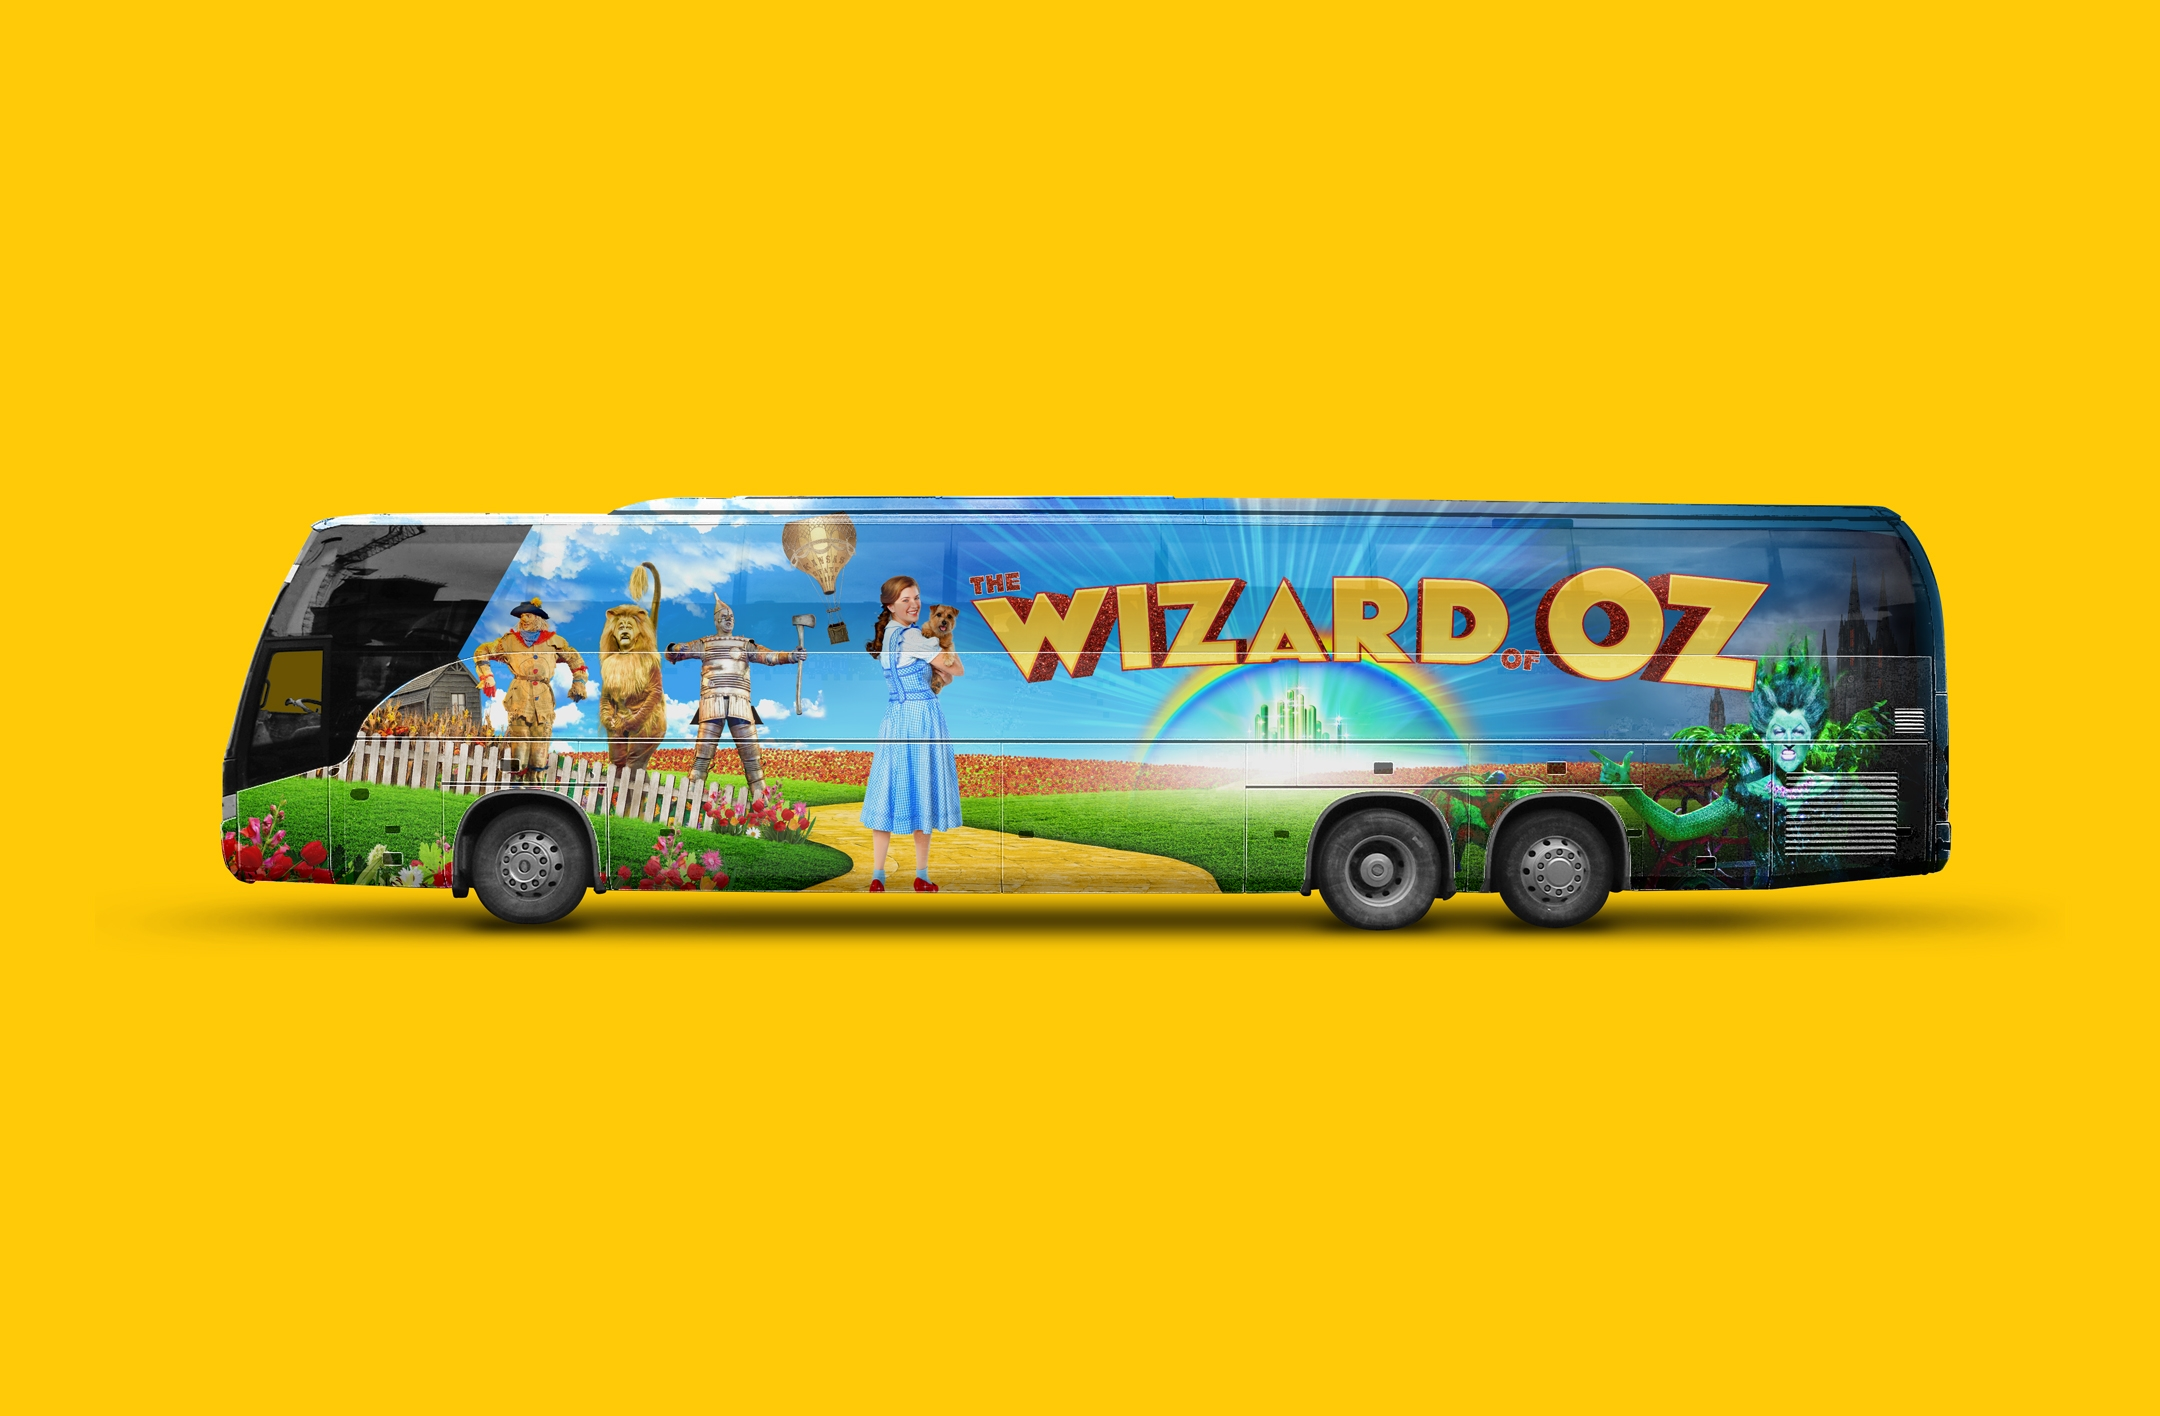 The Wizard of Oz Bus Wrap